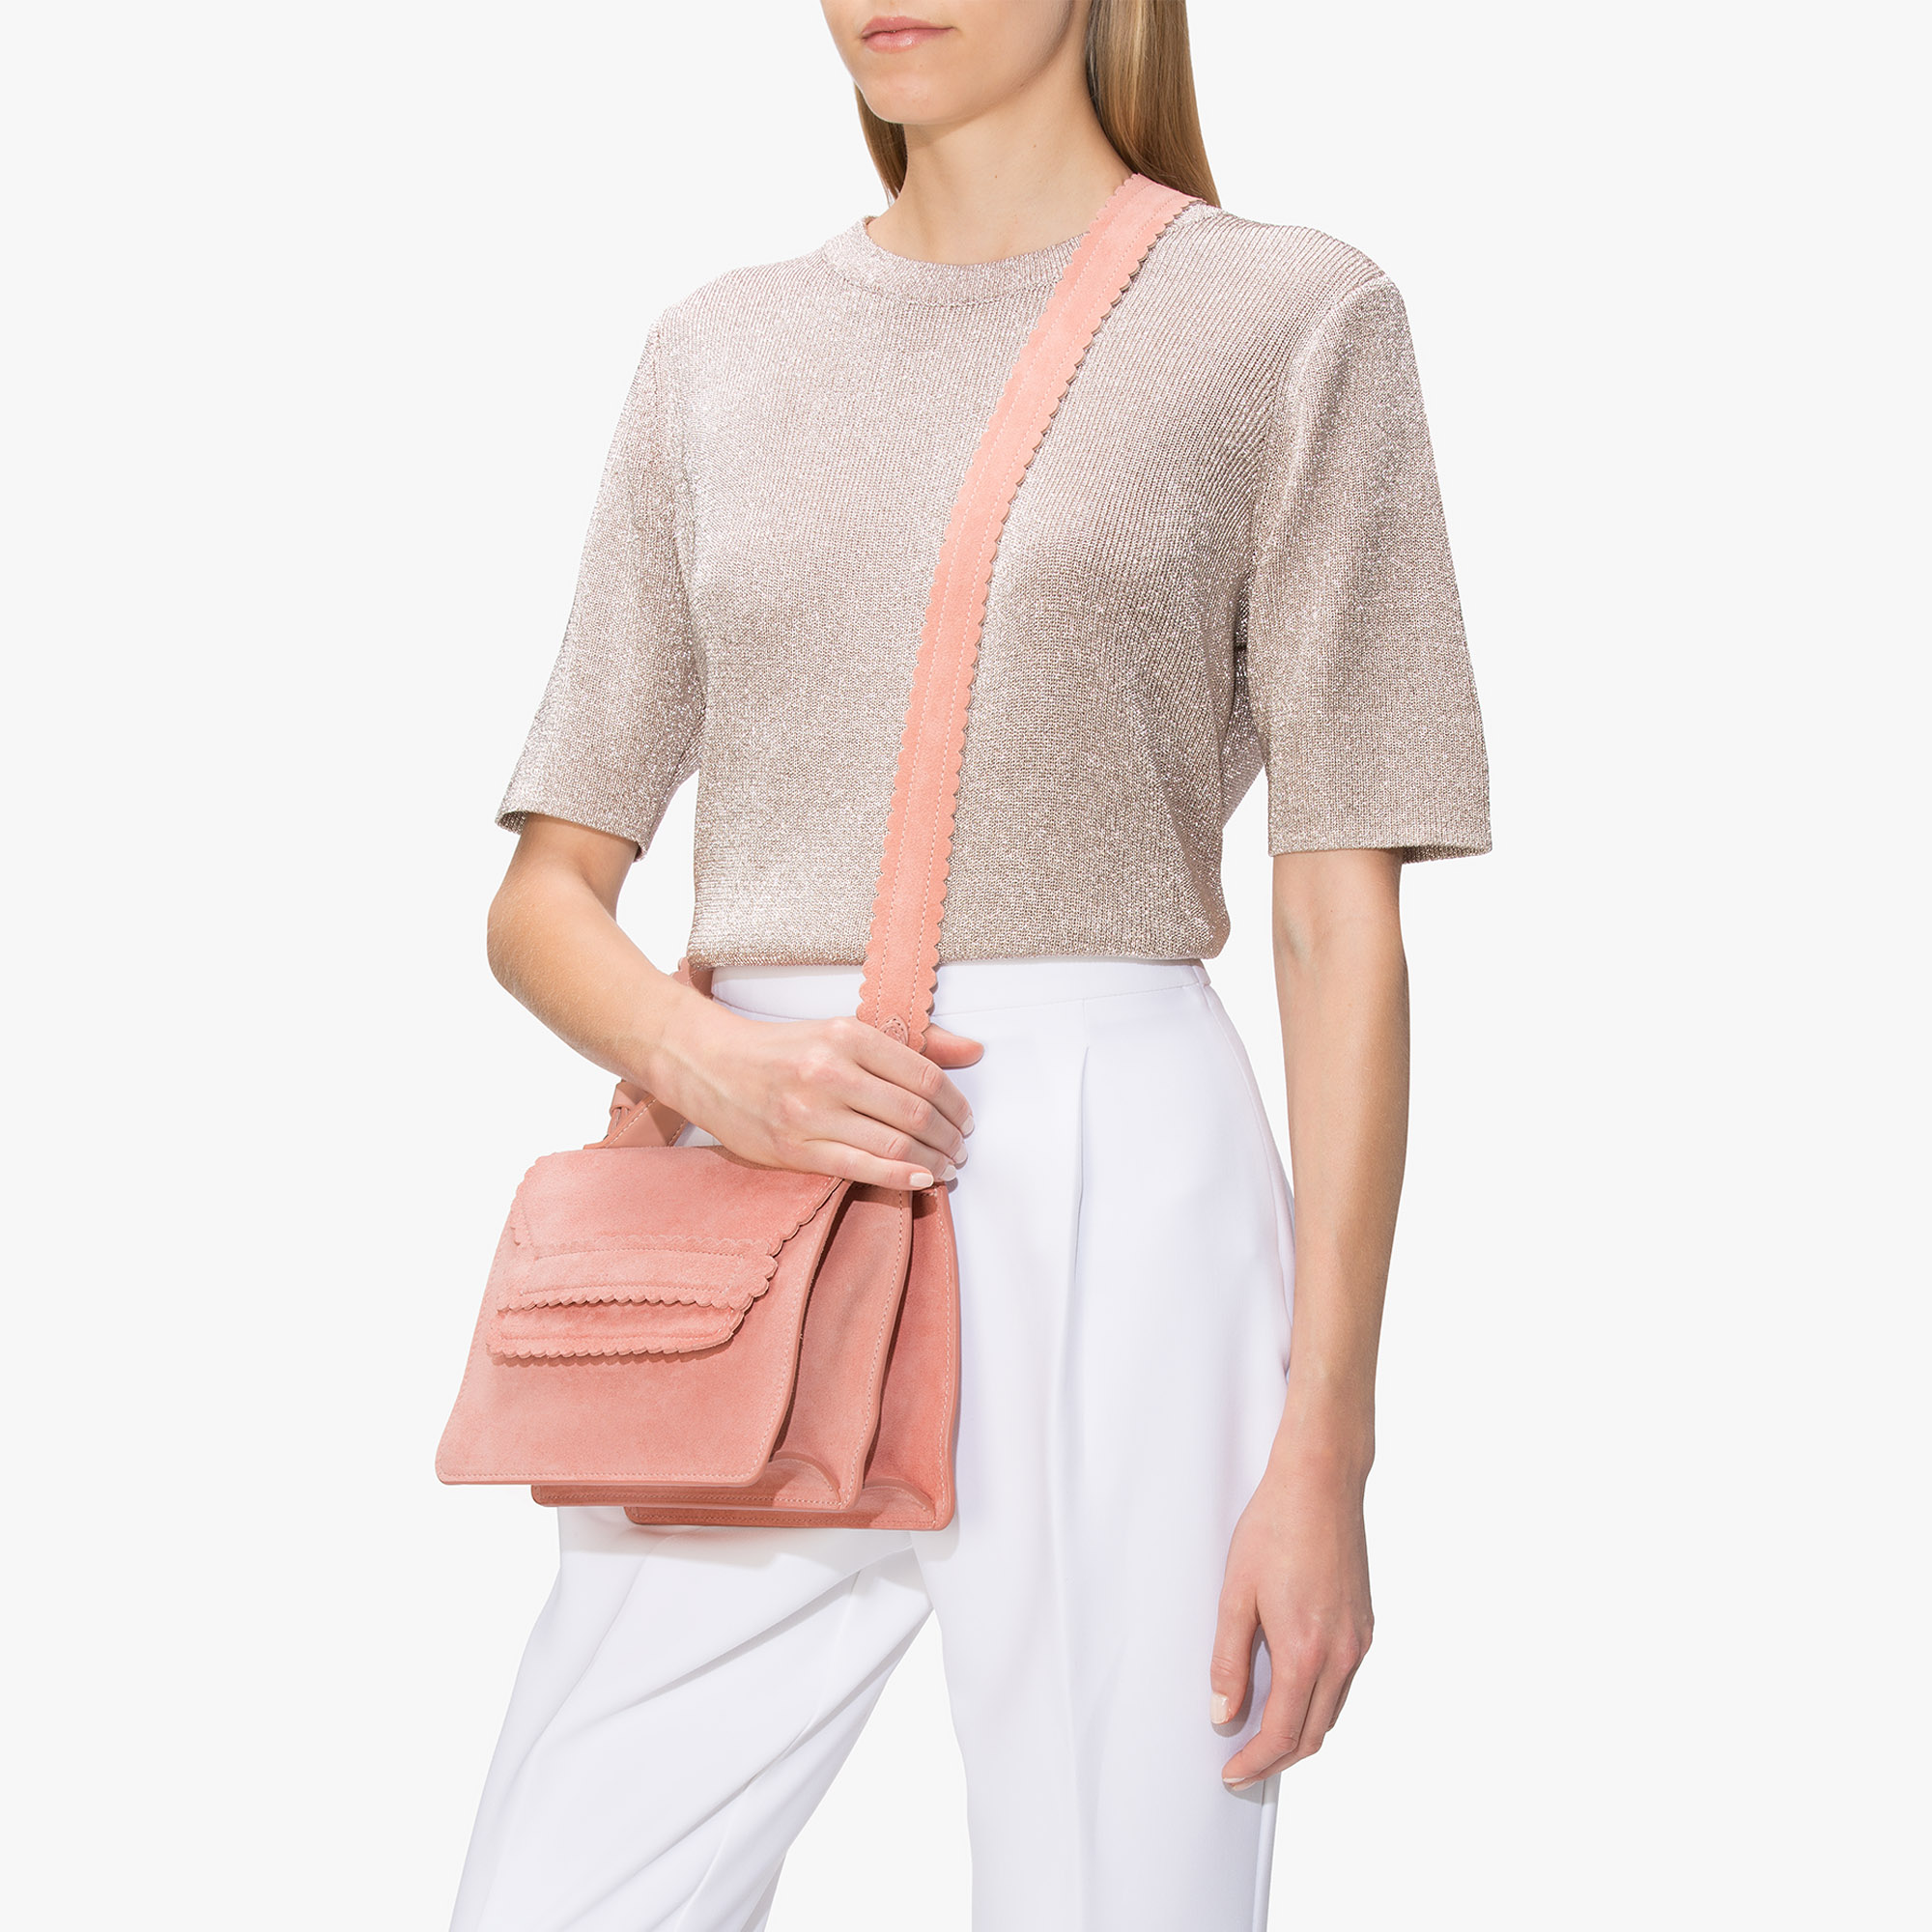 Coccinelle Leopoldine suede cross-body bag